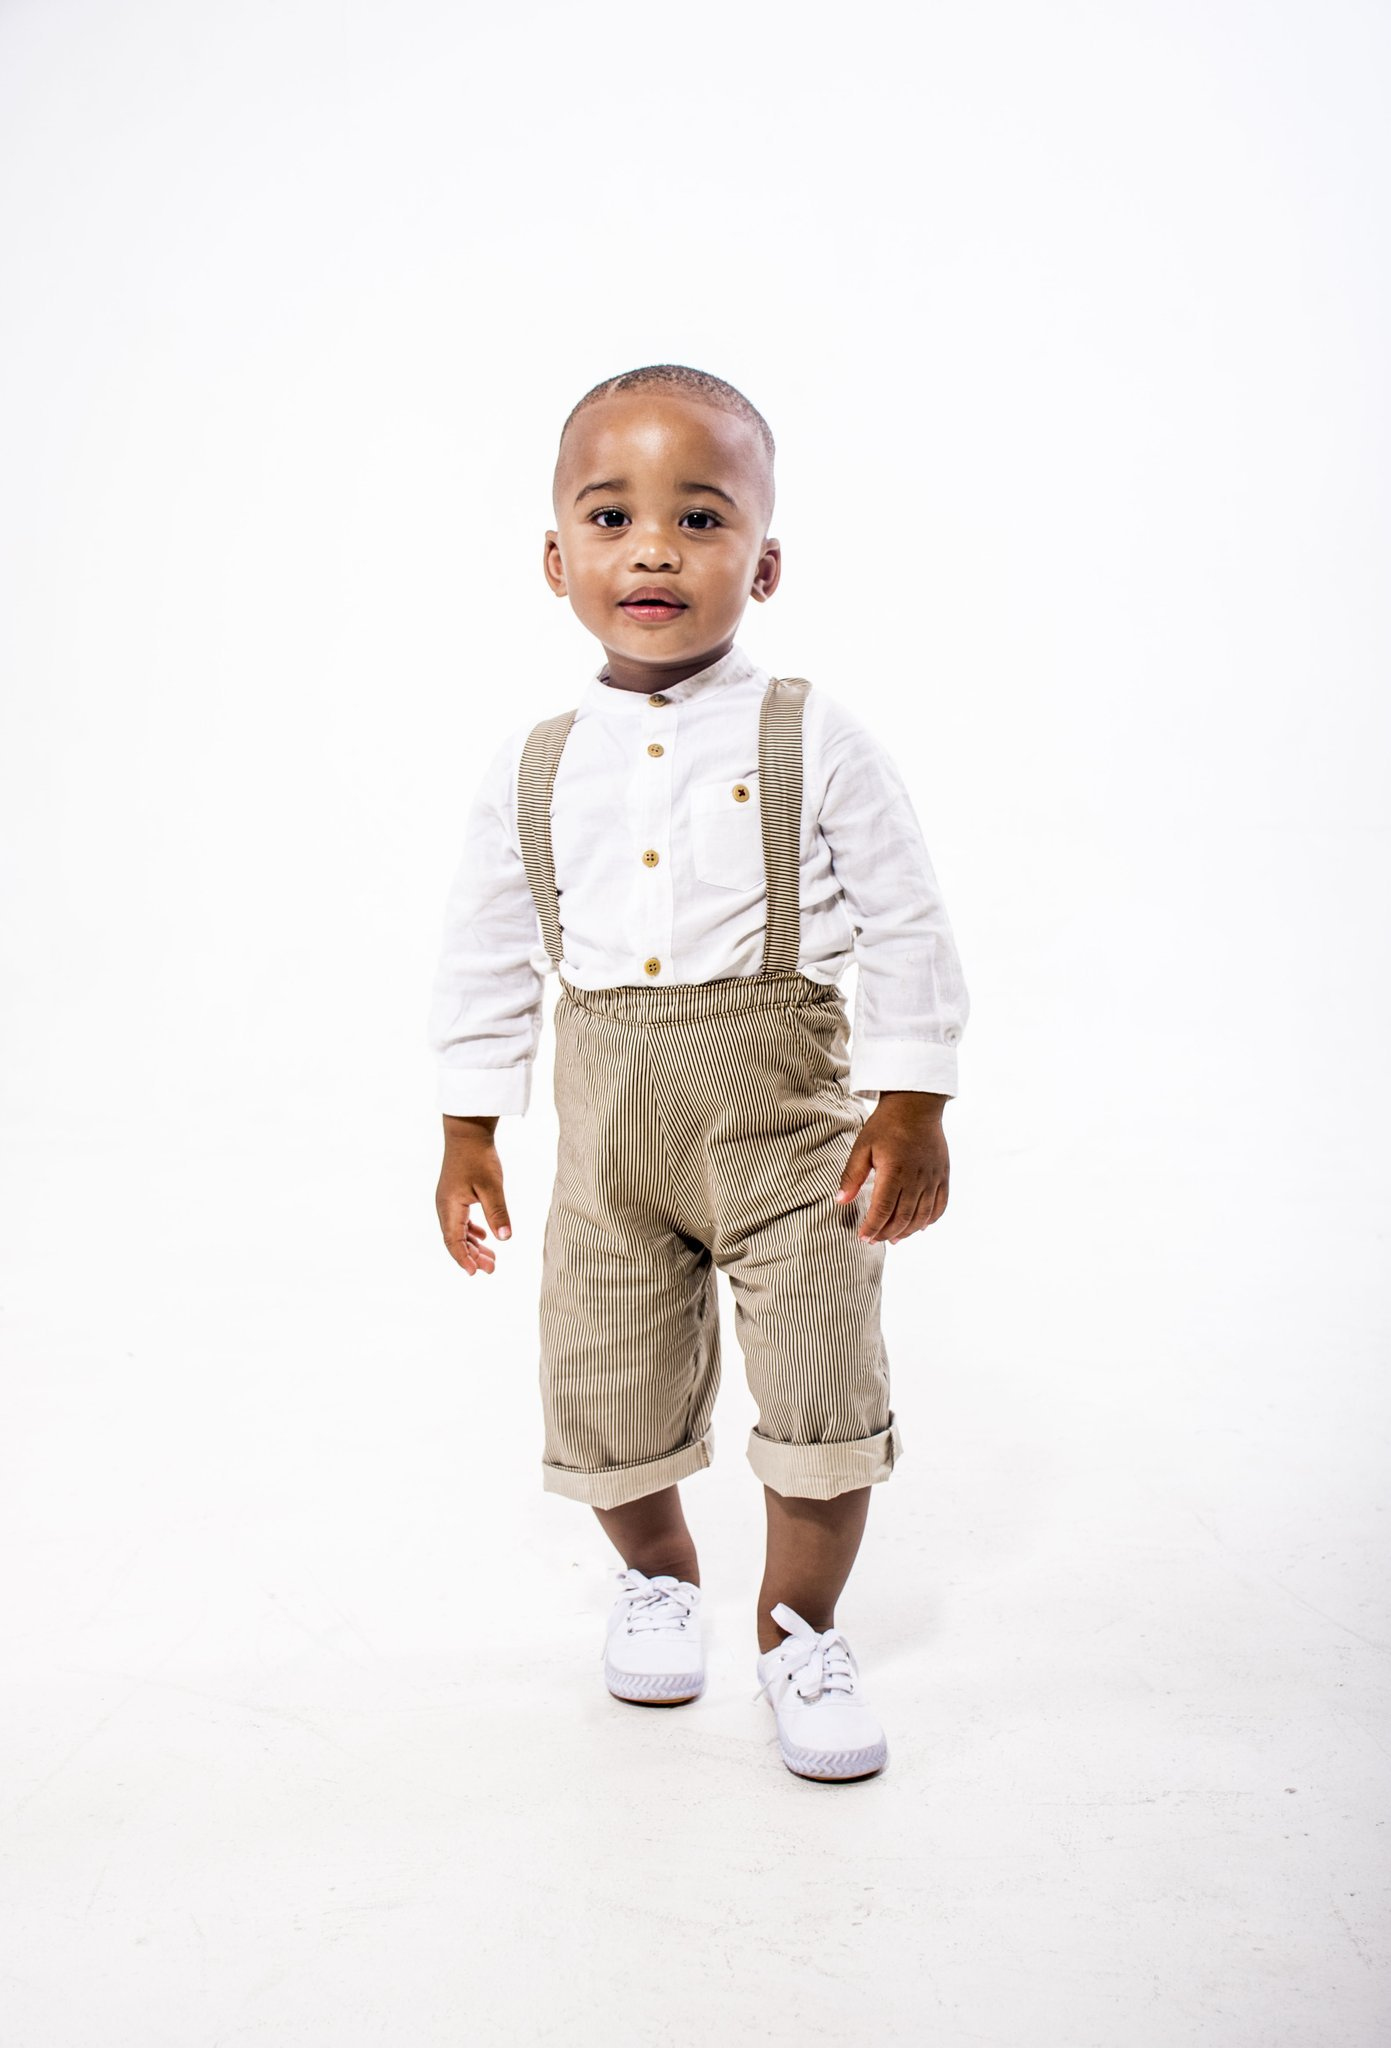 Baby Makhosini launches online kiddies apparel (Photos)